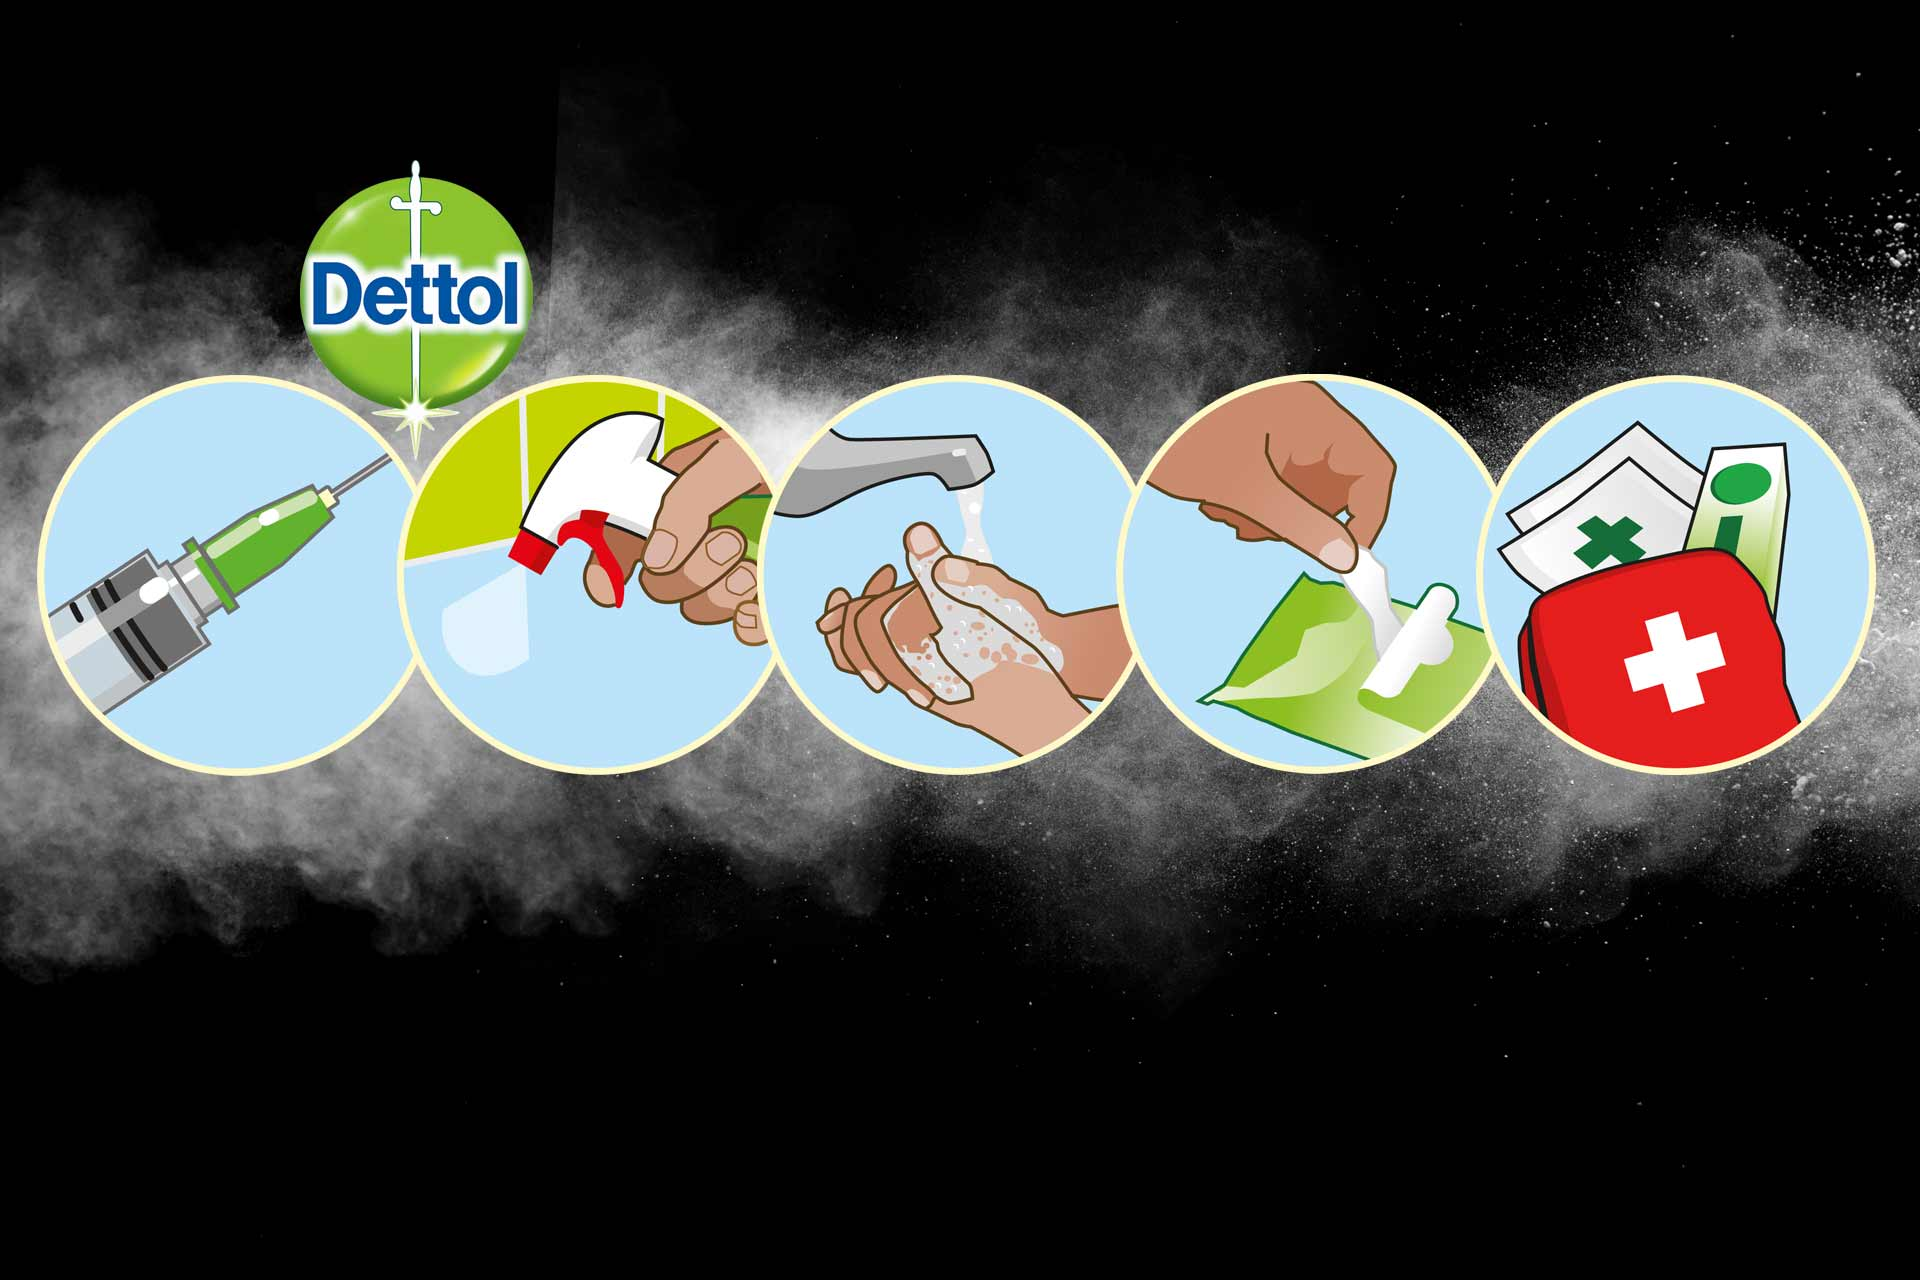 Illustrations for Dettol brand